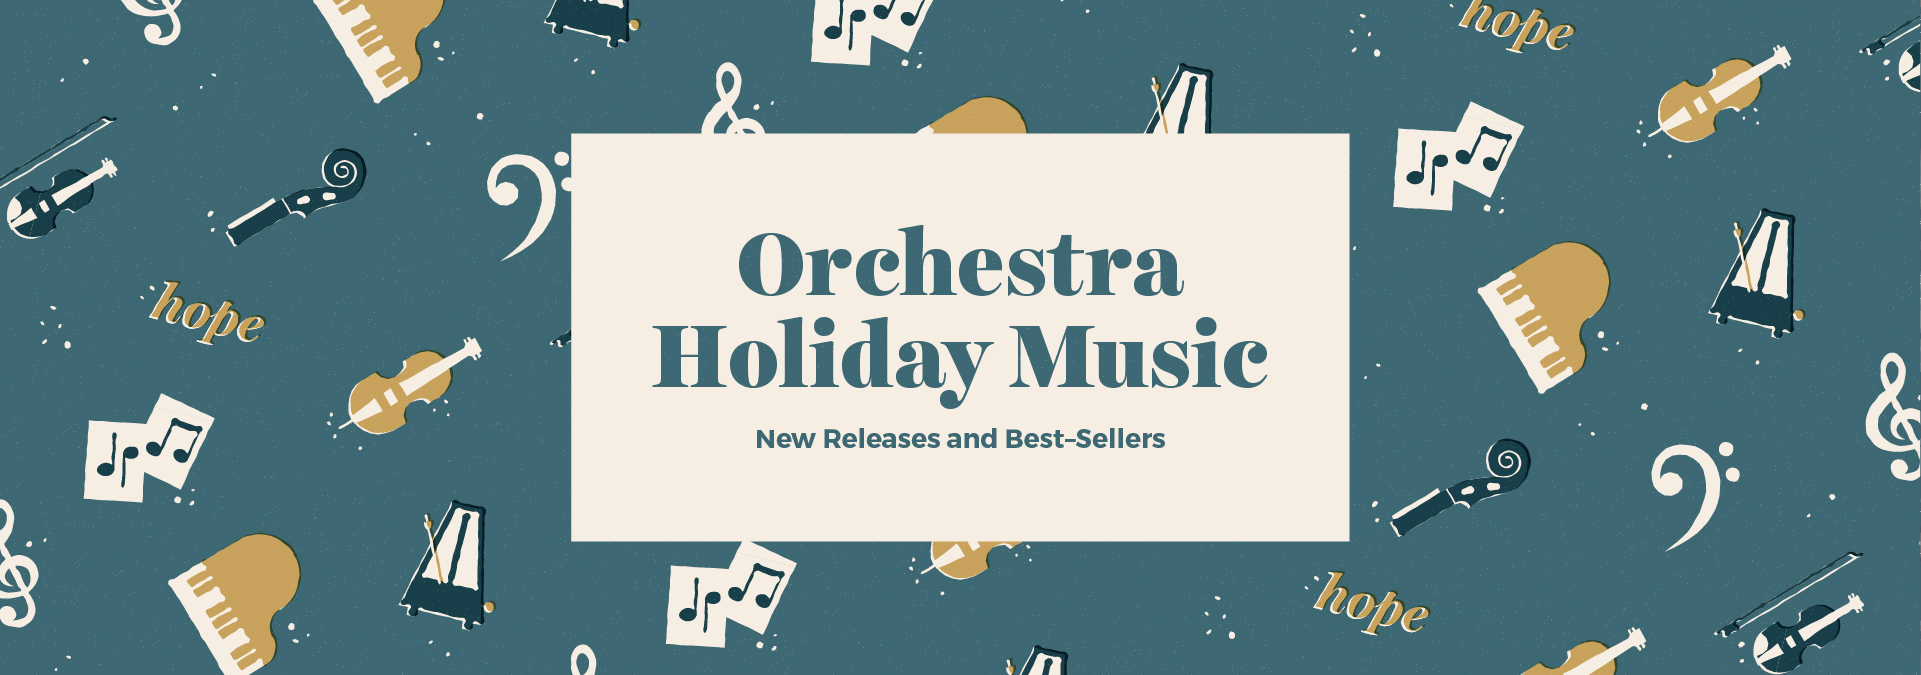 Holiday Orchestra Performance Music